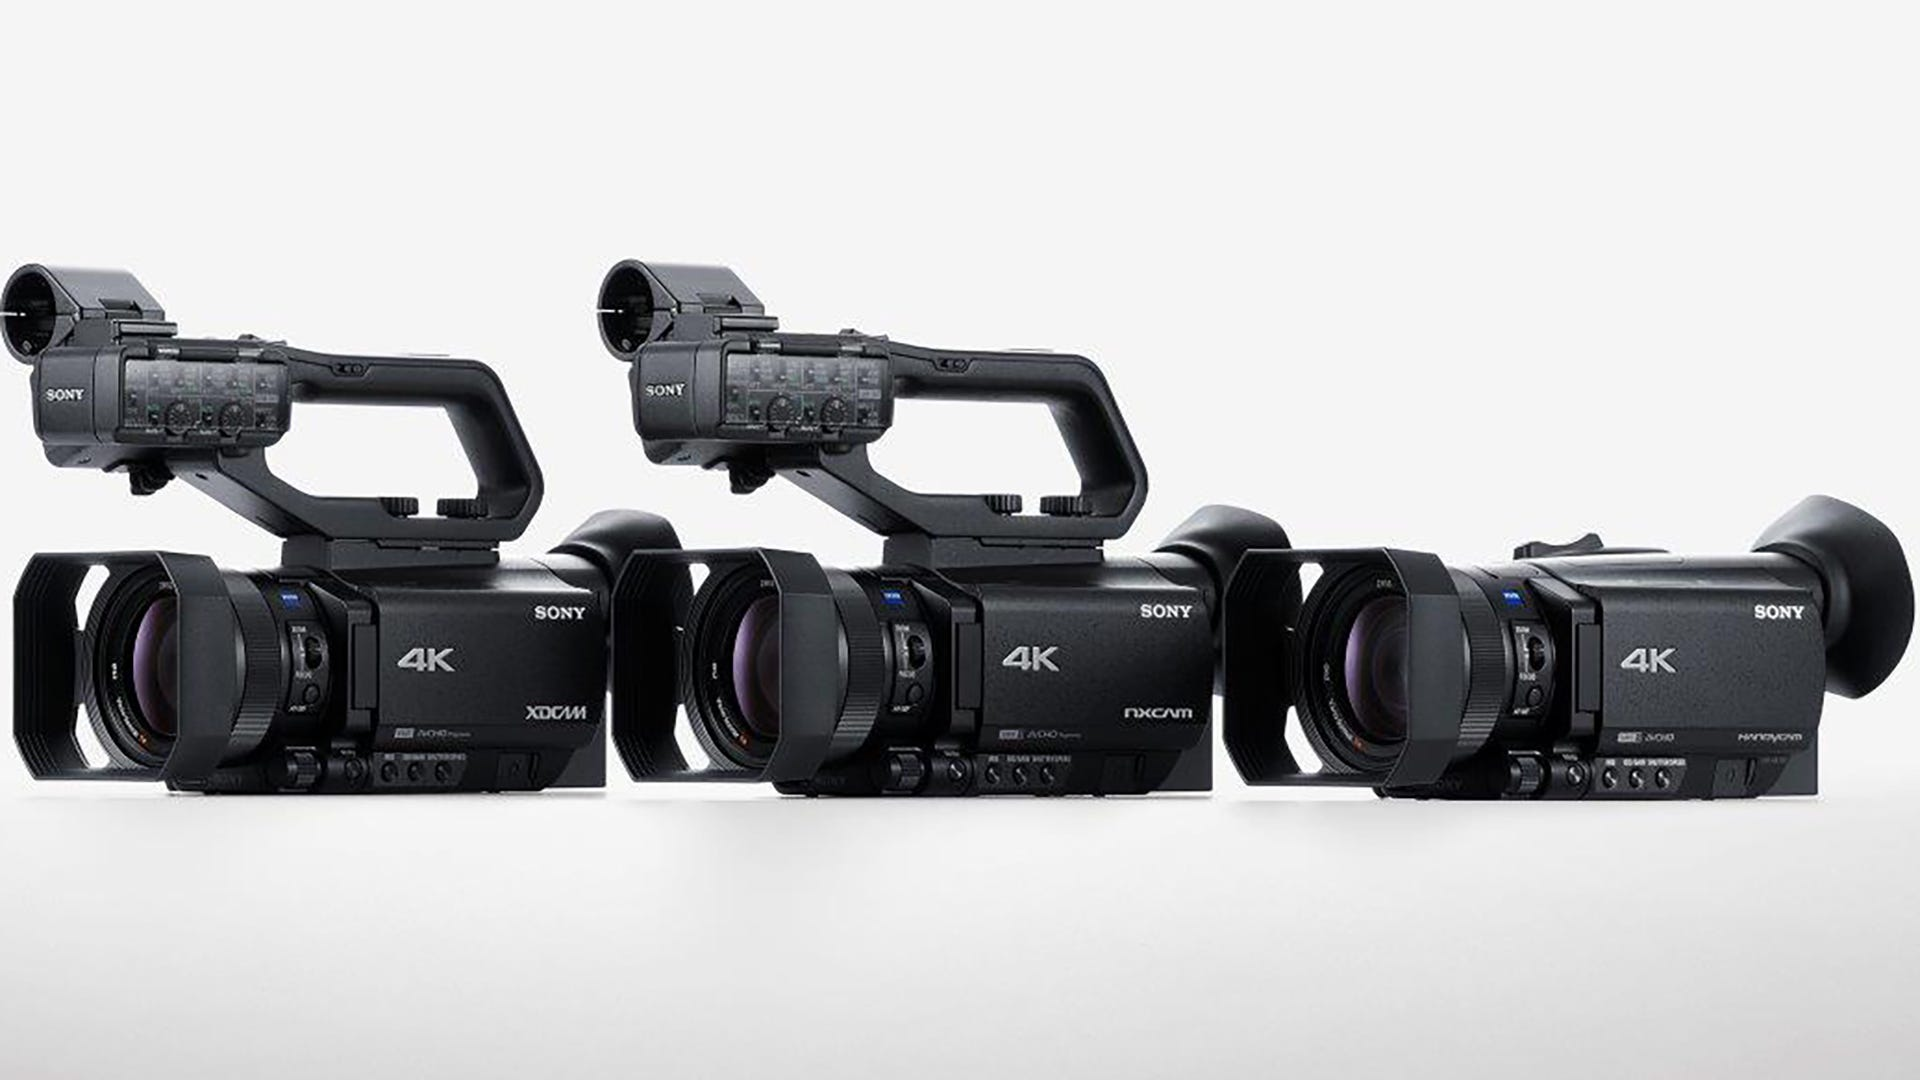 sony camcorder. new sony camcorder trio for pros, enthusiasts boasts faster af, 4k video